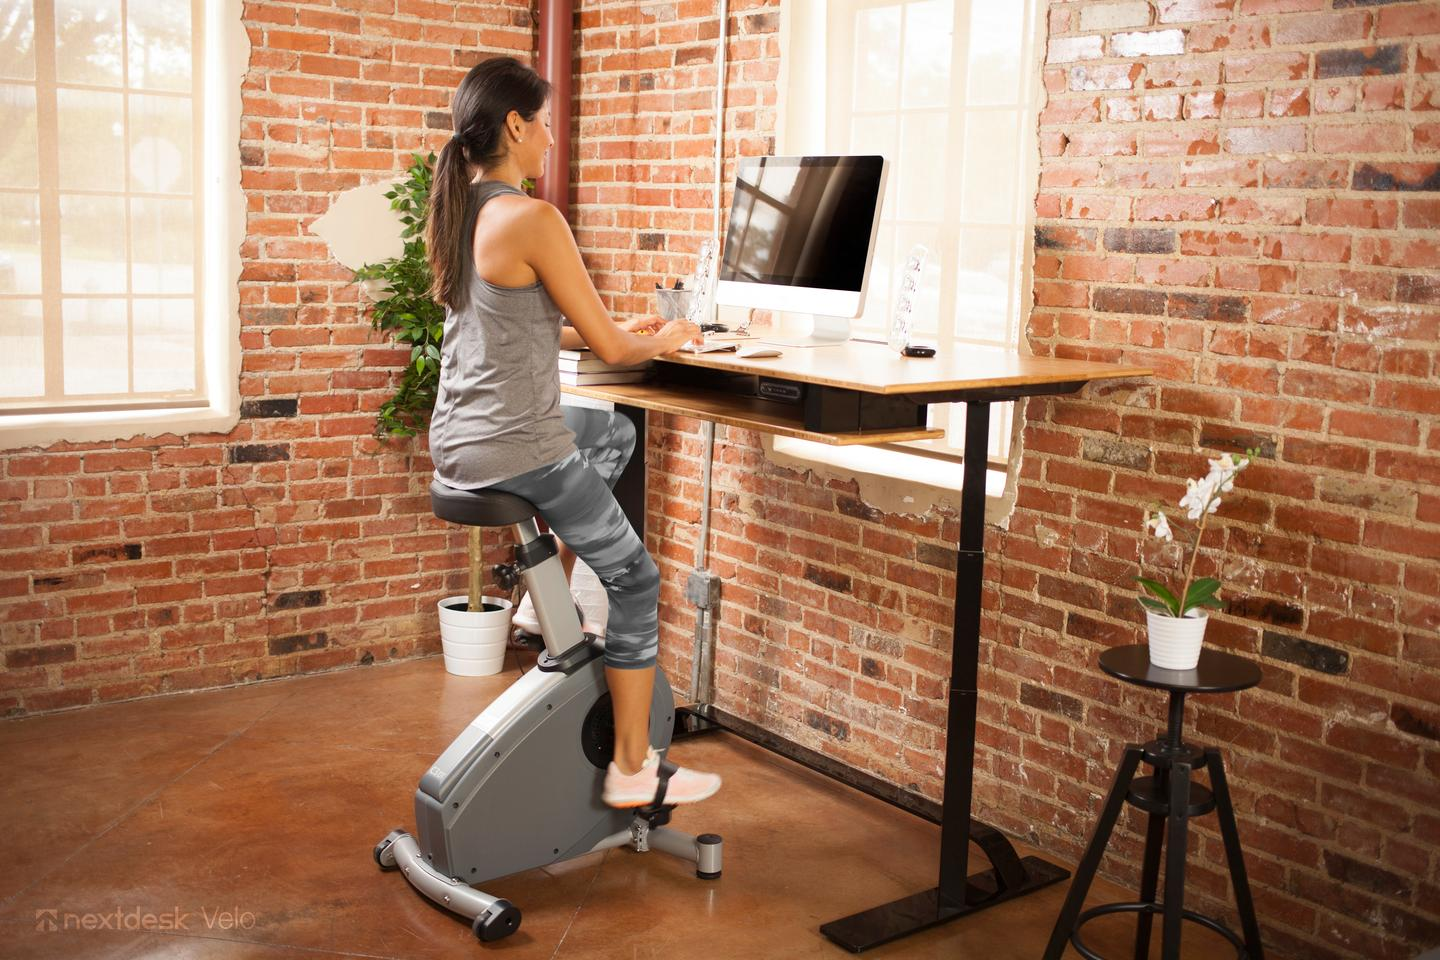 Velo pairs with a standing desk for a sitting workout